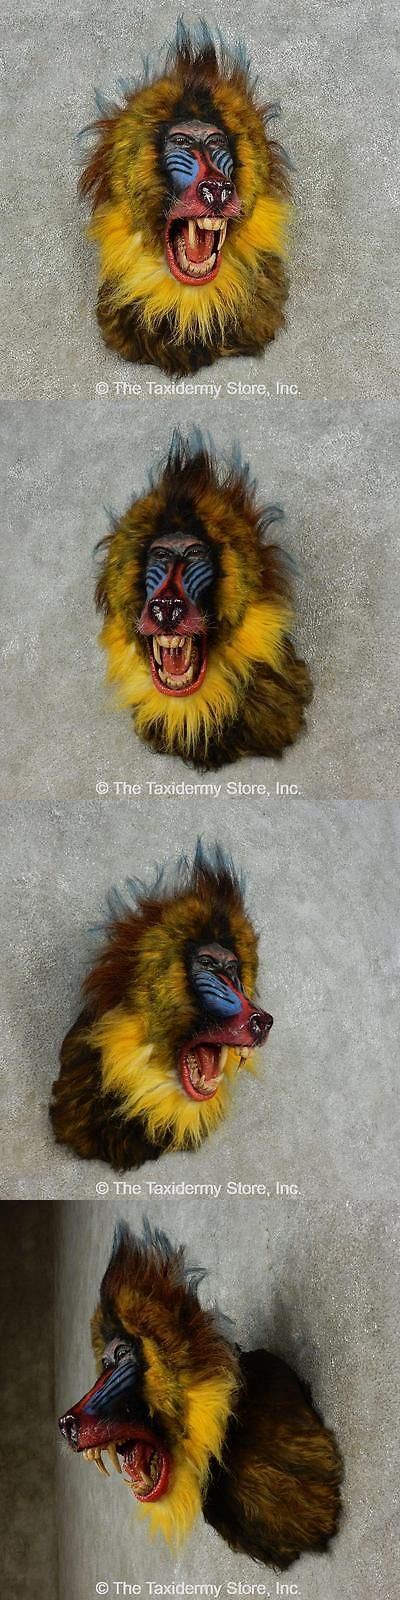 Large Animals 177908: #16604 E+ | Reproduction Mandrill Baboon Taxidermy Shoulder Mount For Sale -> BUY IT NOW ONLY: $1530.8 on eBay!